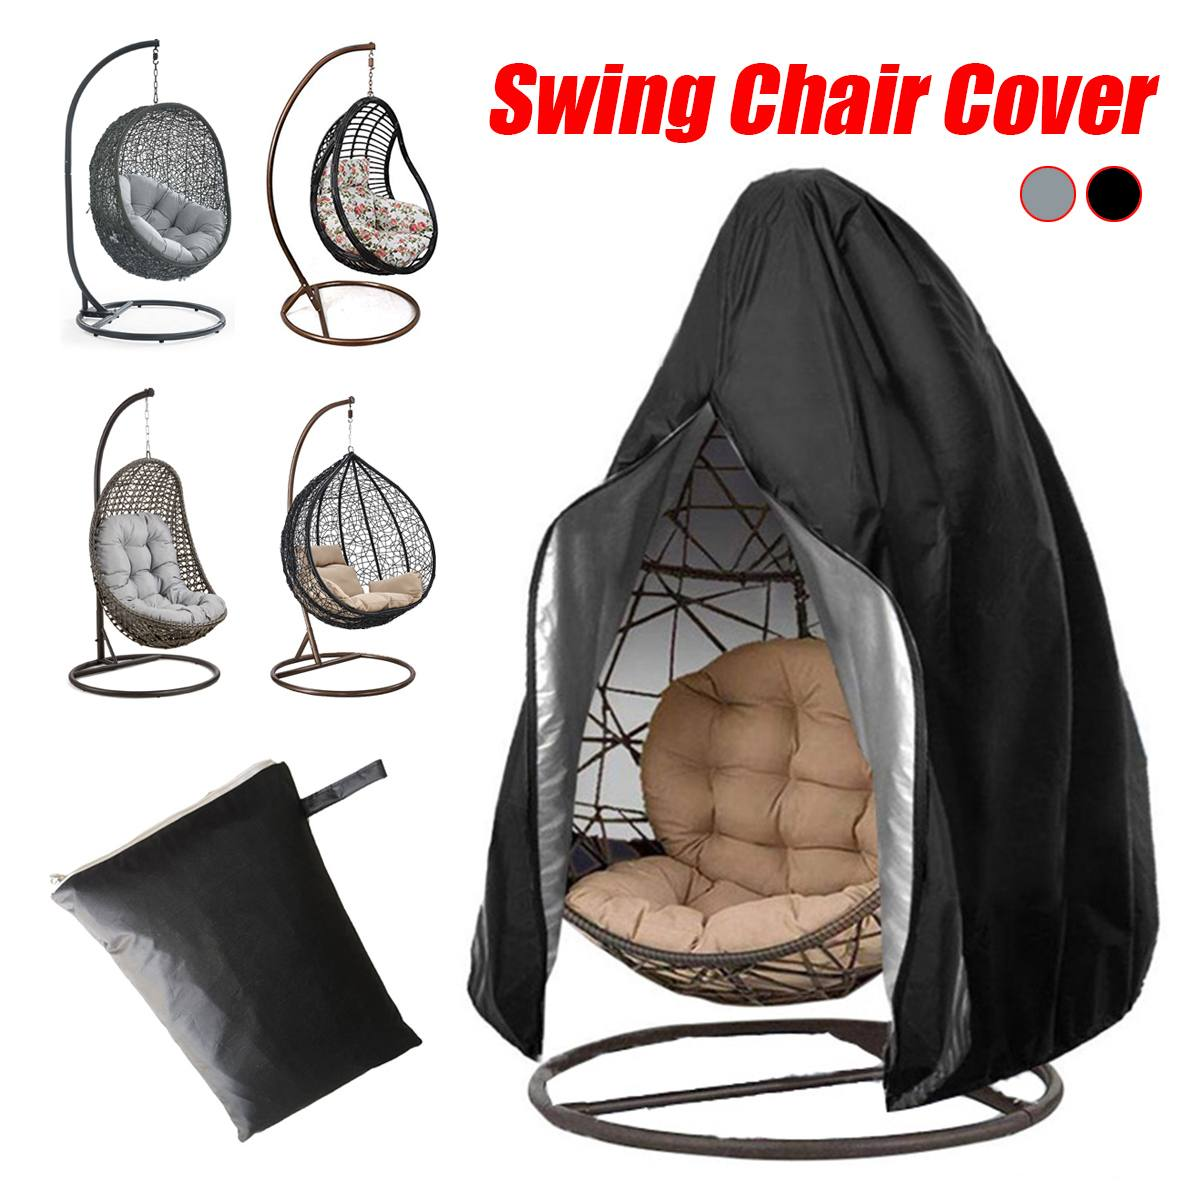 210D Large Hanging Swing Chair Cover Waterproof Patio Swing Dustproof Chair Cover For Outdoors Garden Protective Case|All-Purpose Covers| |  - title=